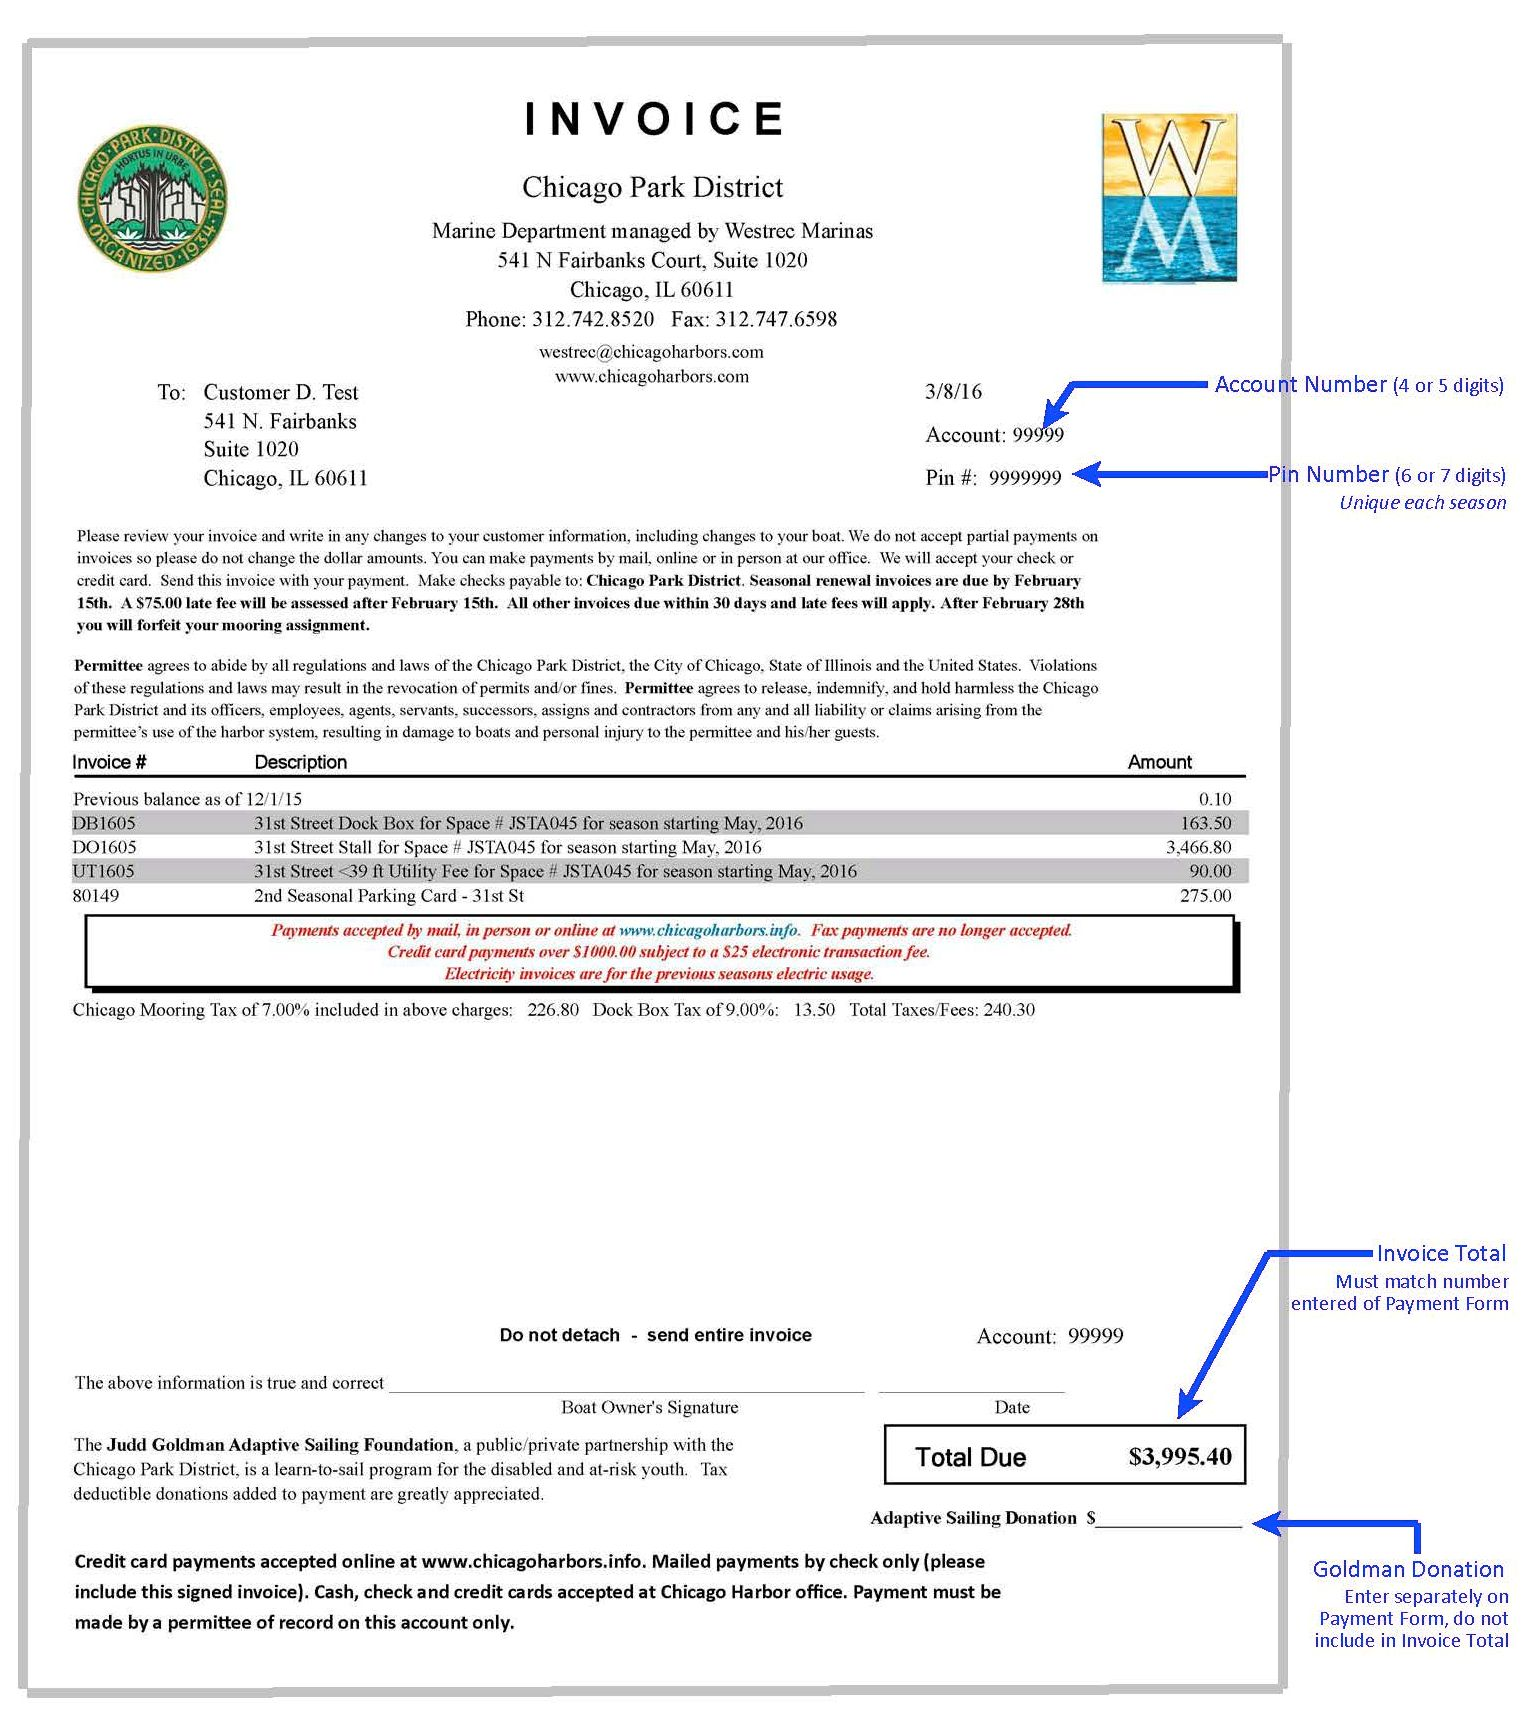 Sample Invoice 2016